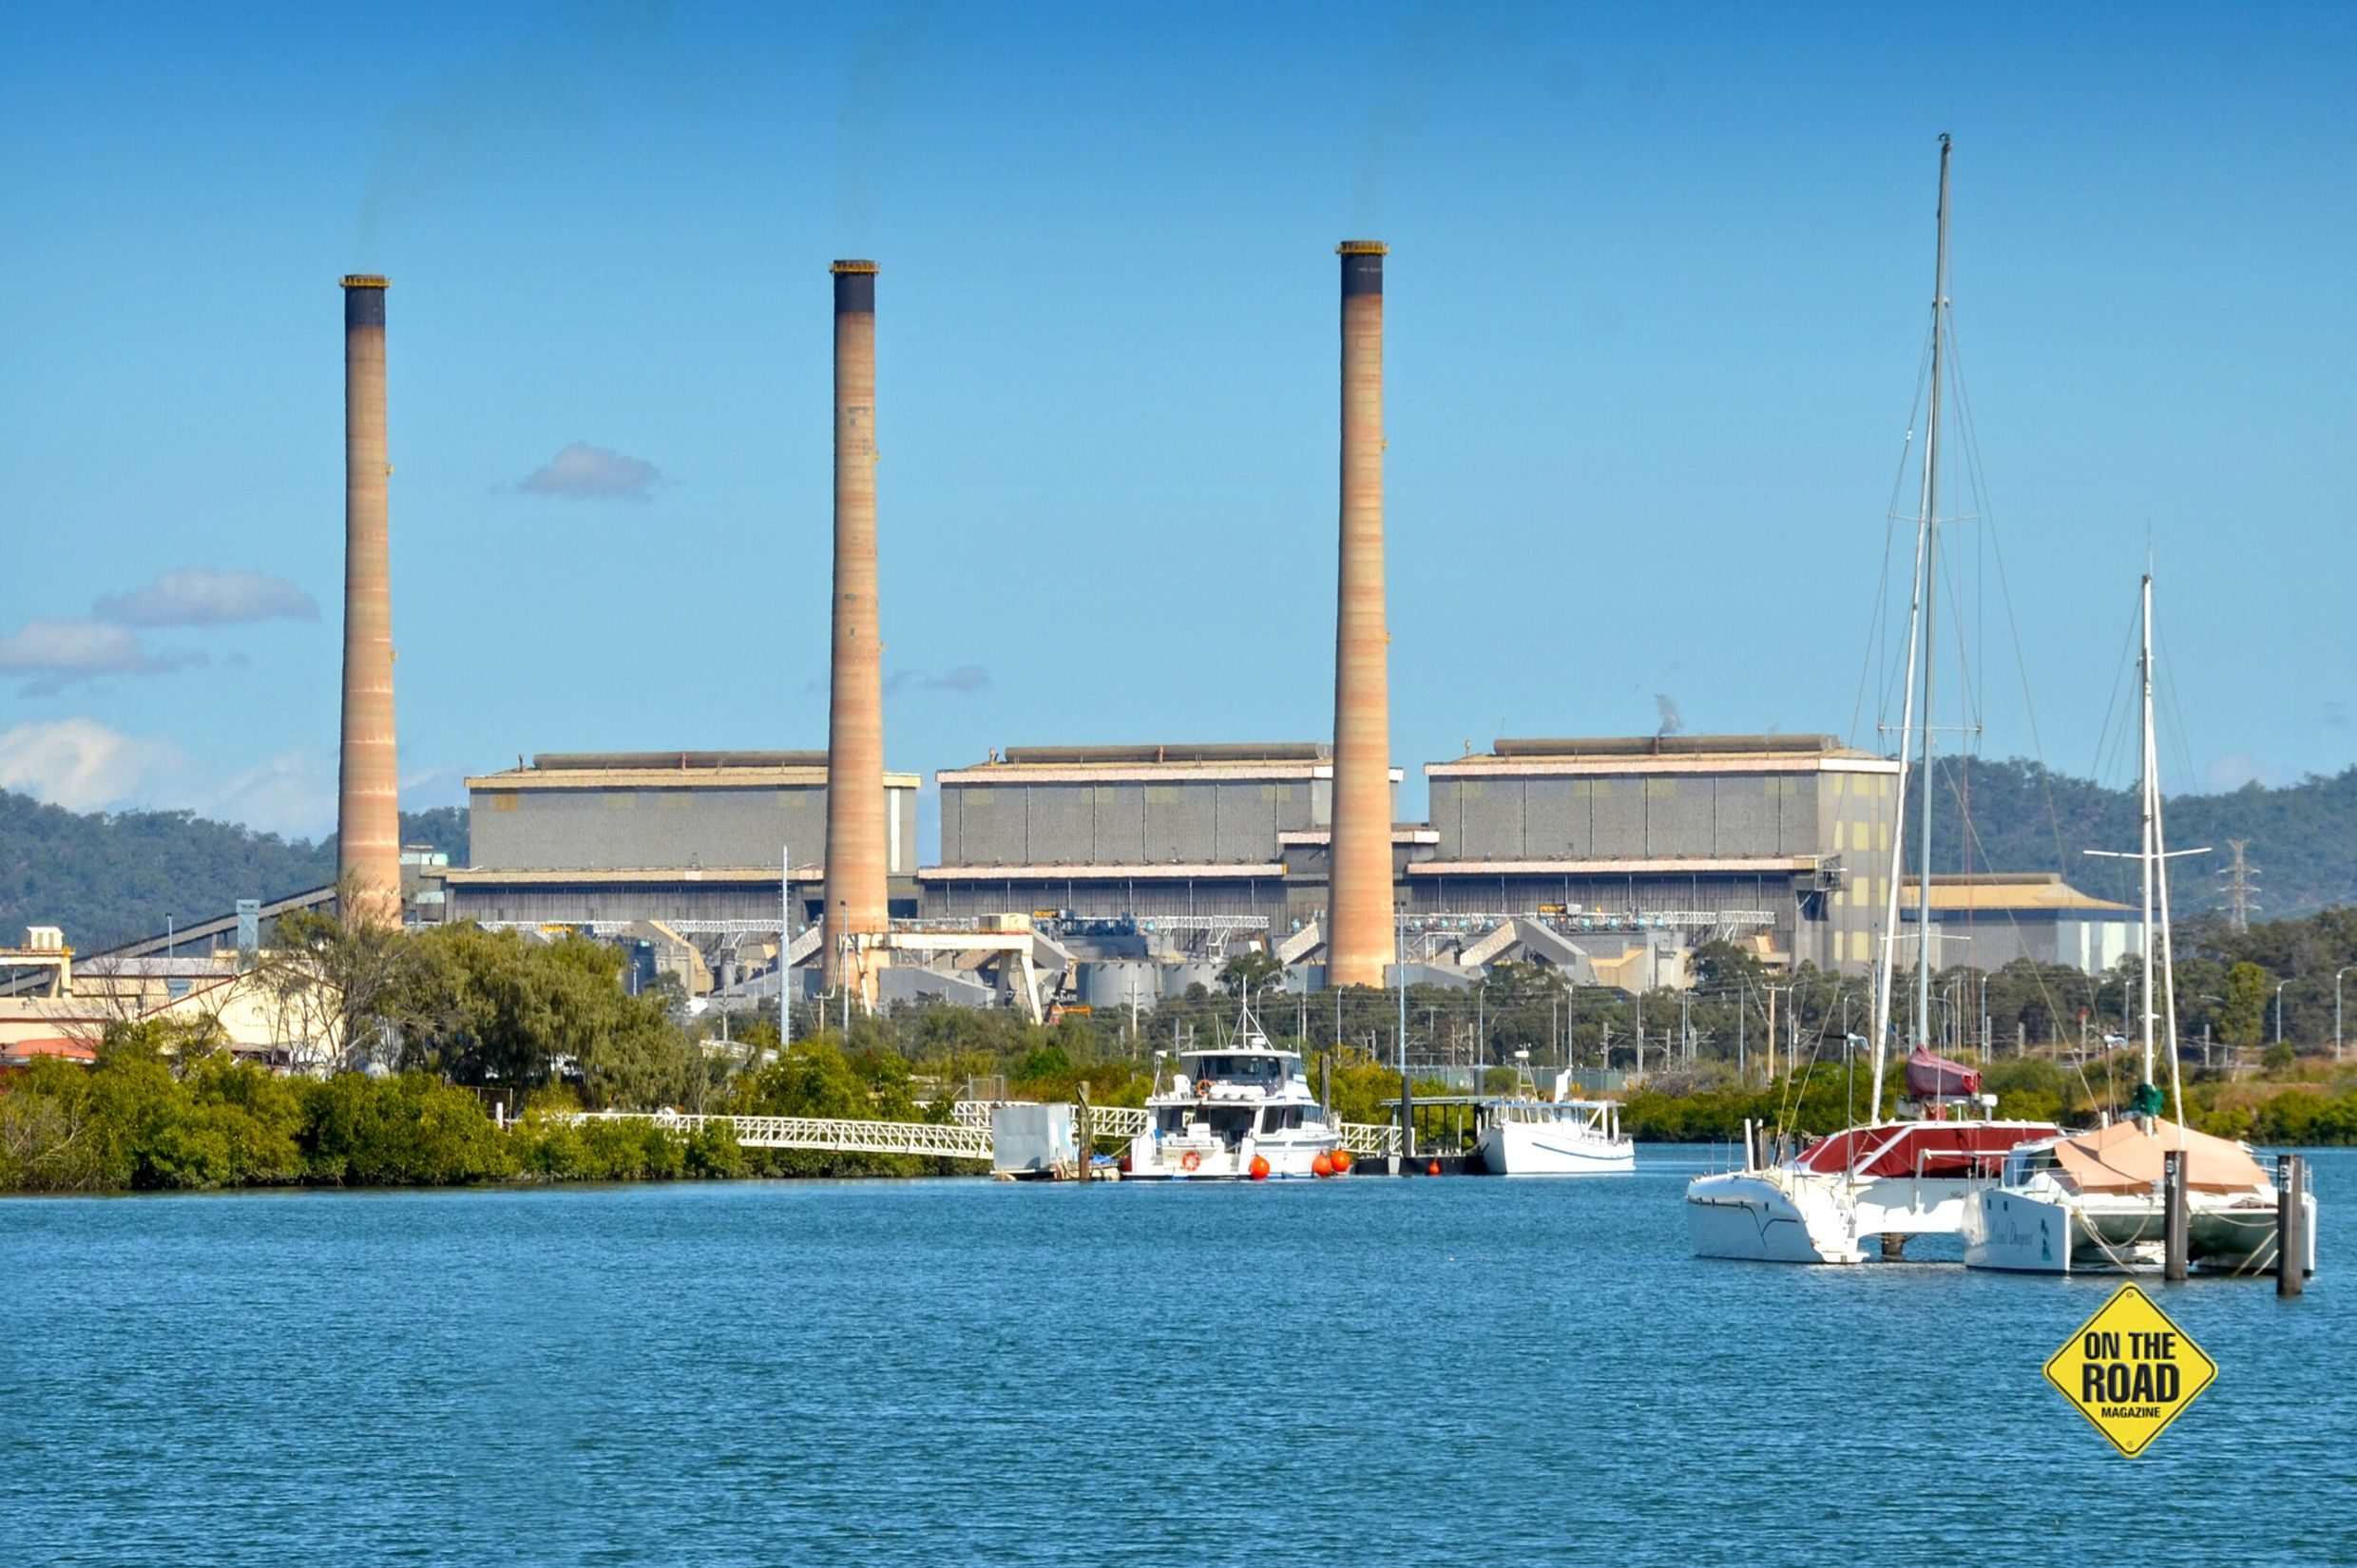 The NRG Power Station overlooks boats Moore in Calliope River